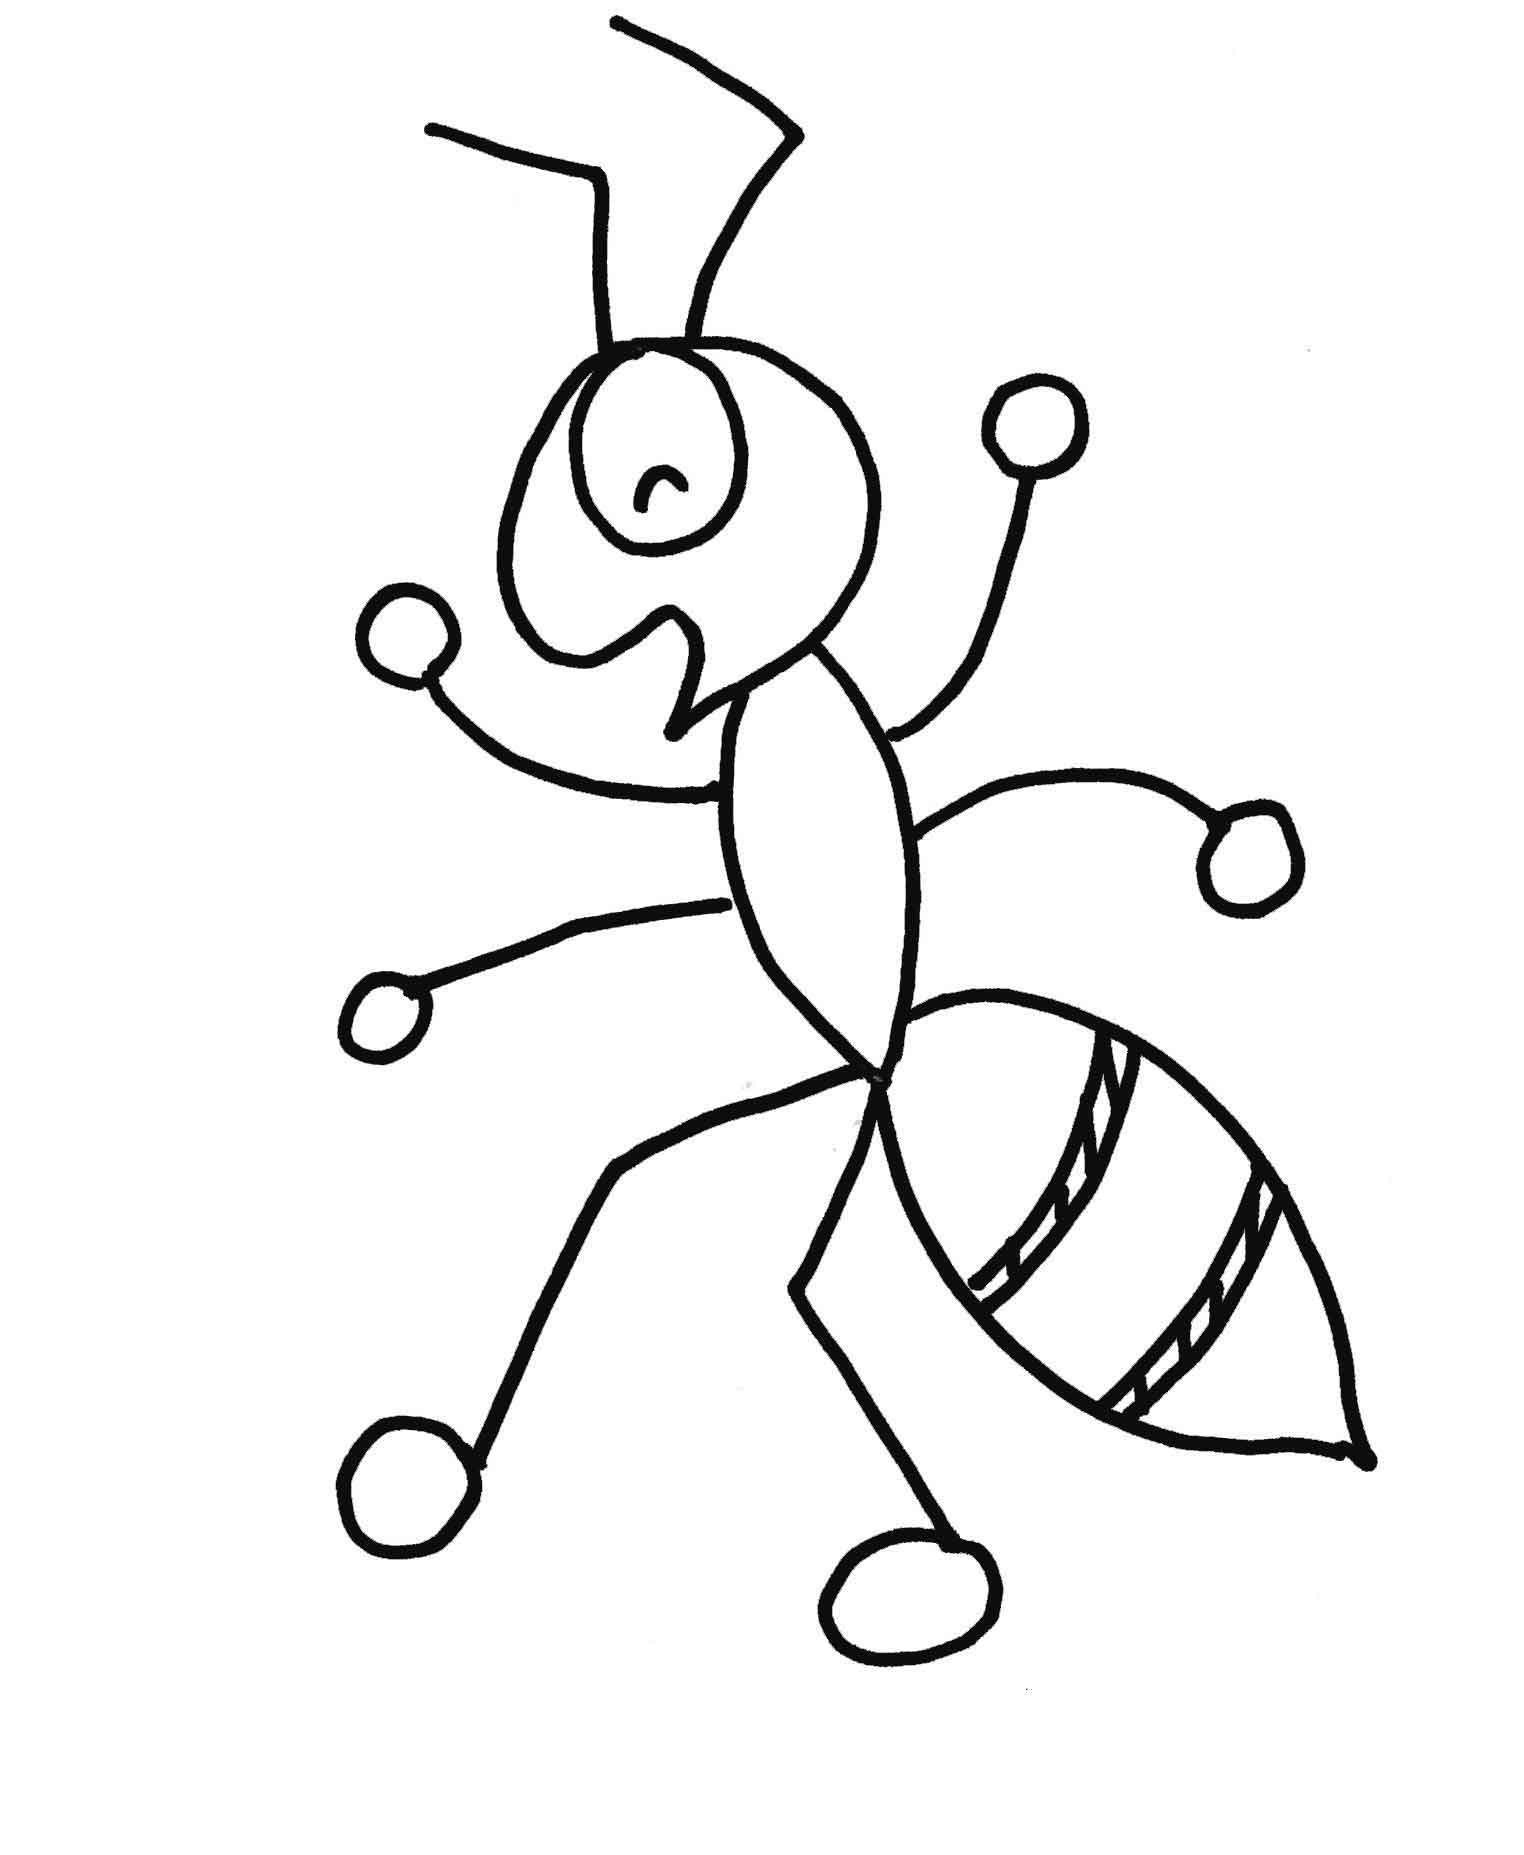 ant picture to color smiling baby ants coloring pages best place to color ant to color picture